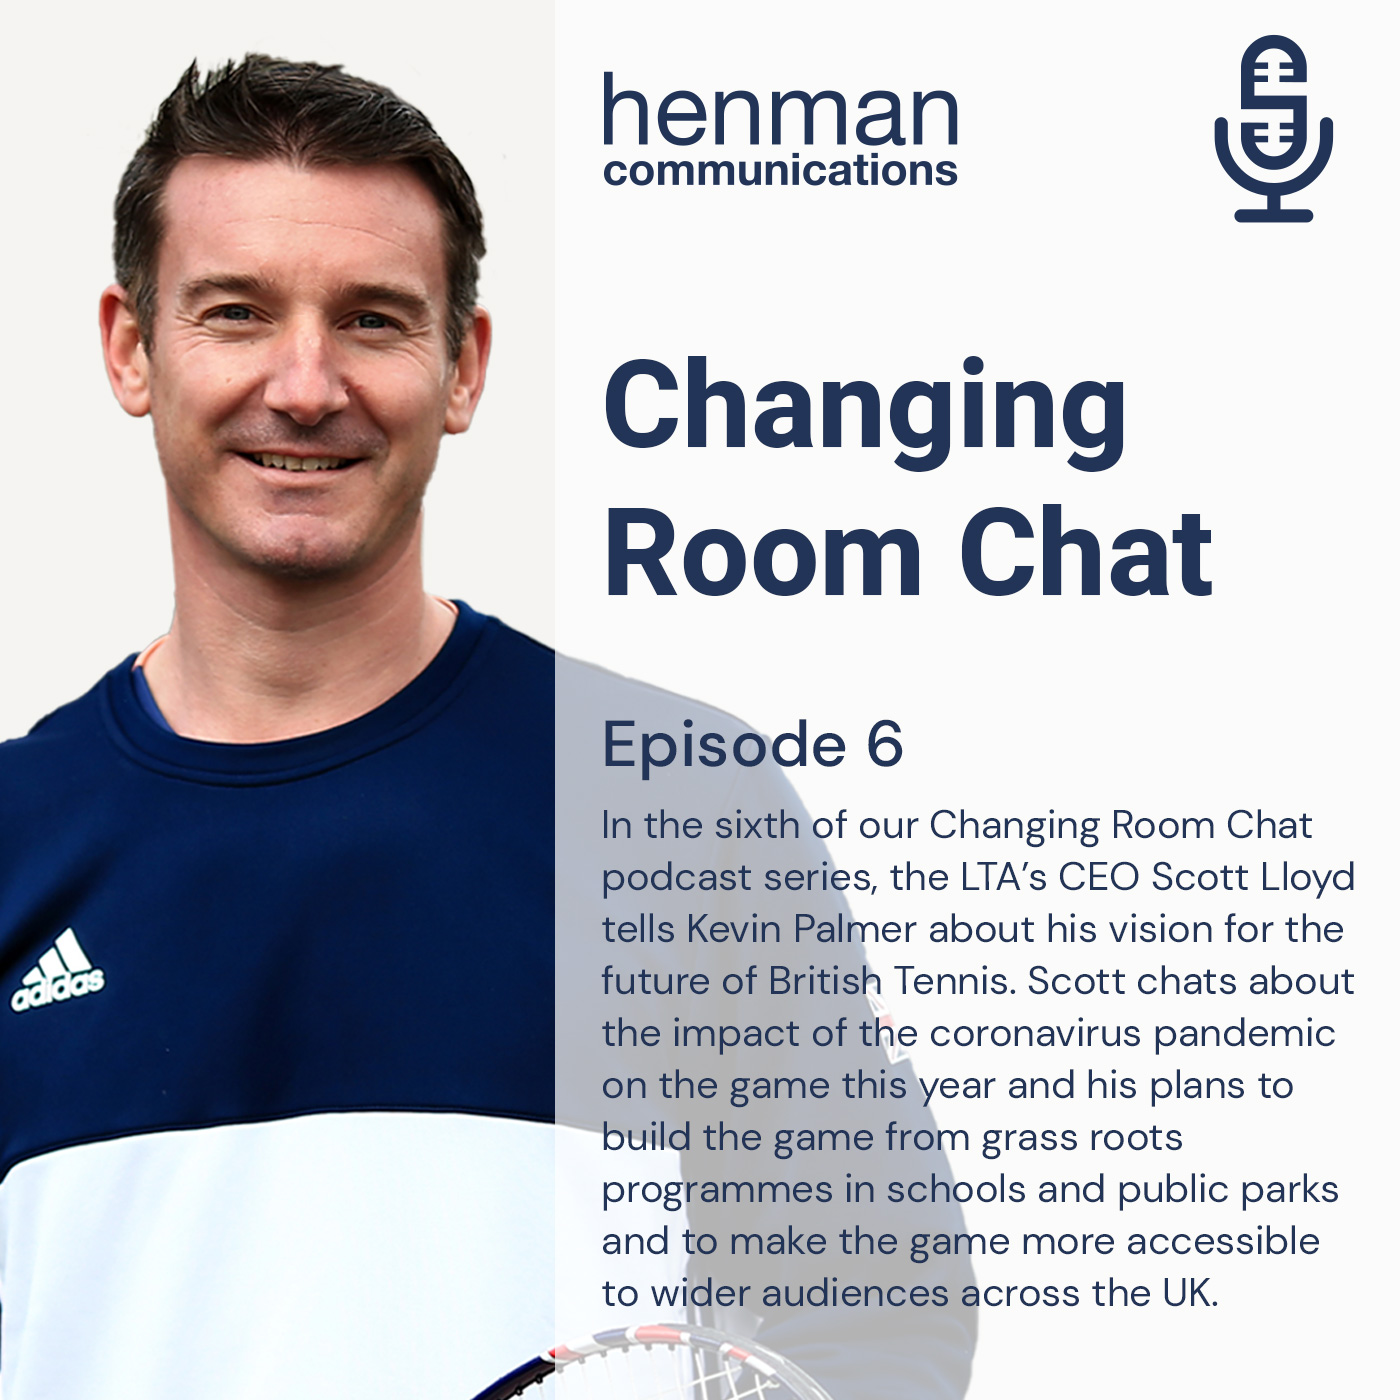 Changing Room Chat